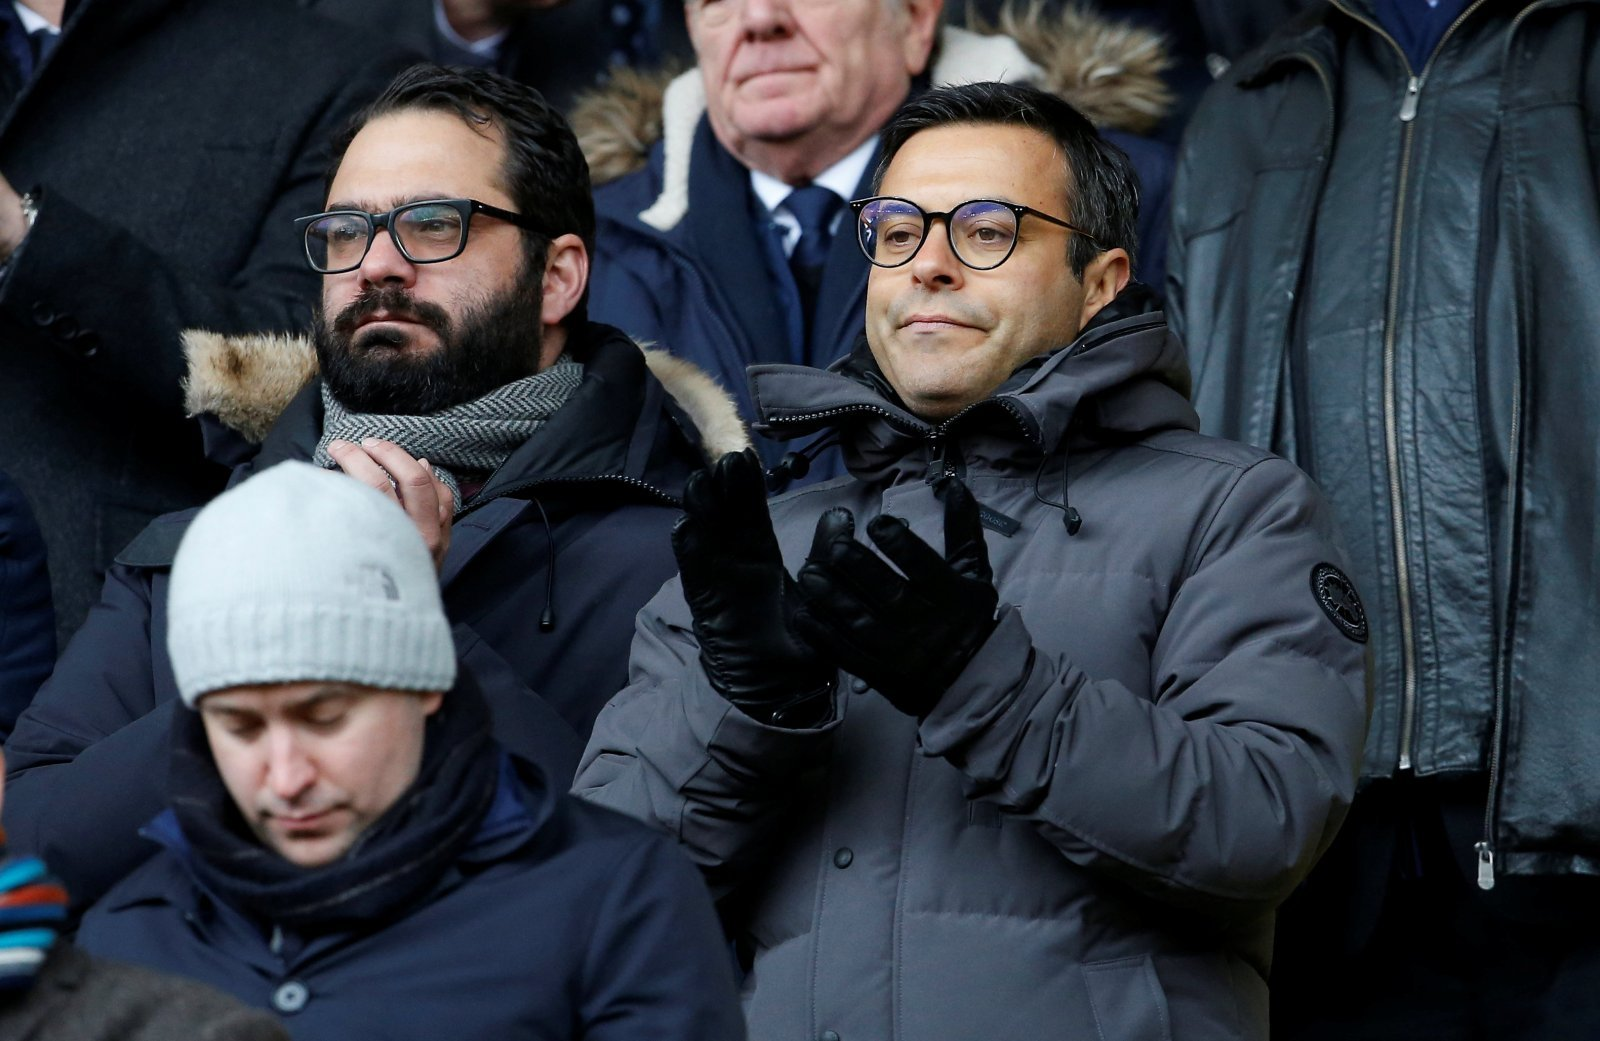 Leeds United: Fans demand Kylian Mbappe signing after he's pictured with Andrea Radrizzani